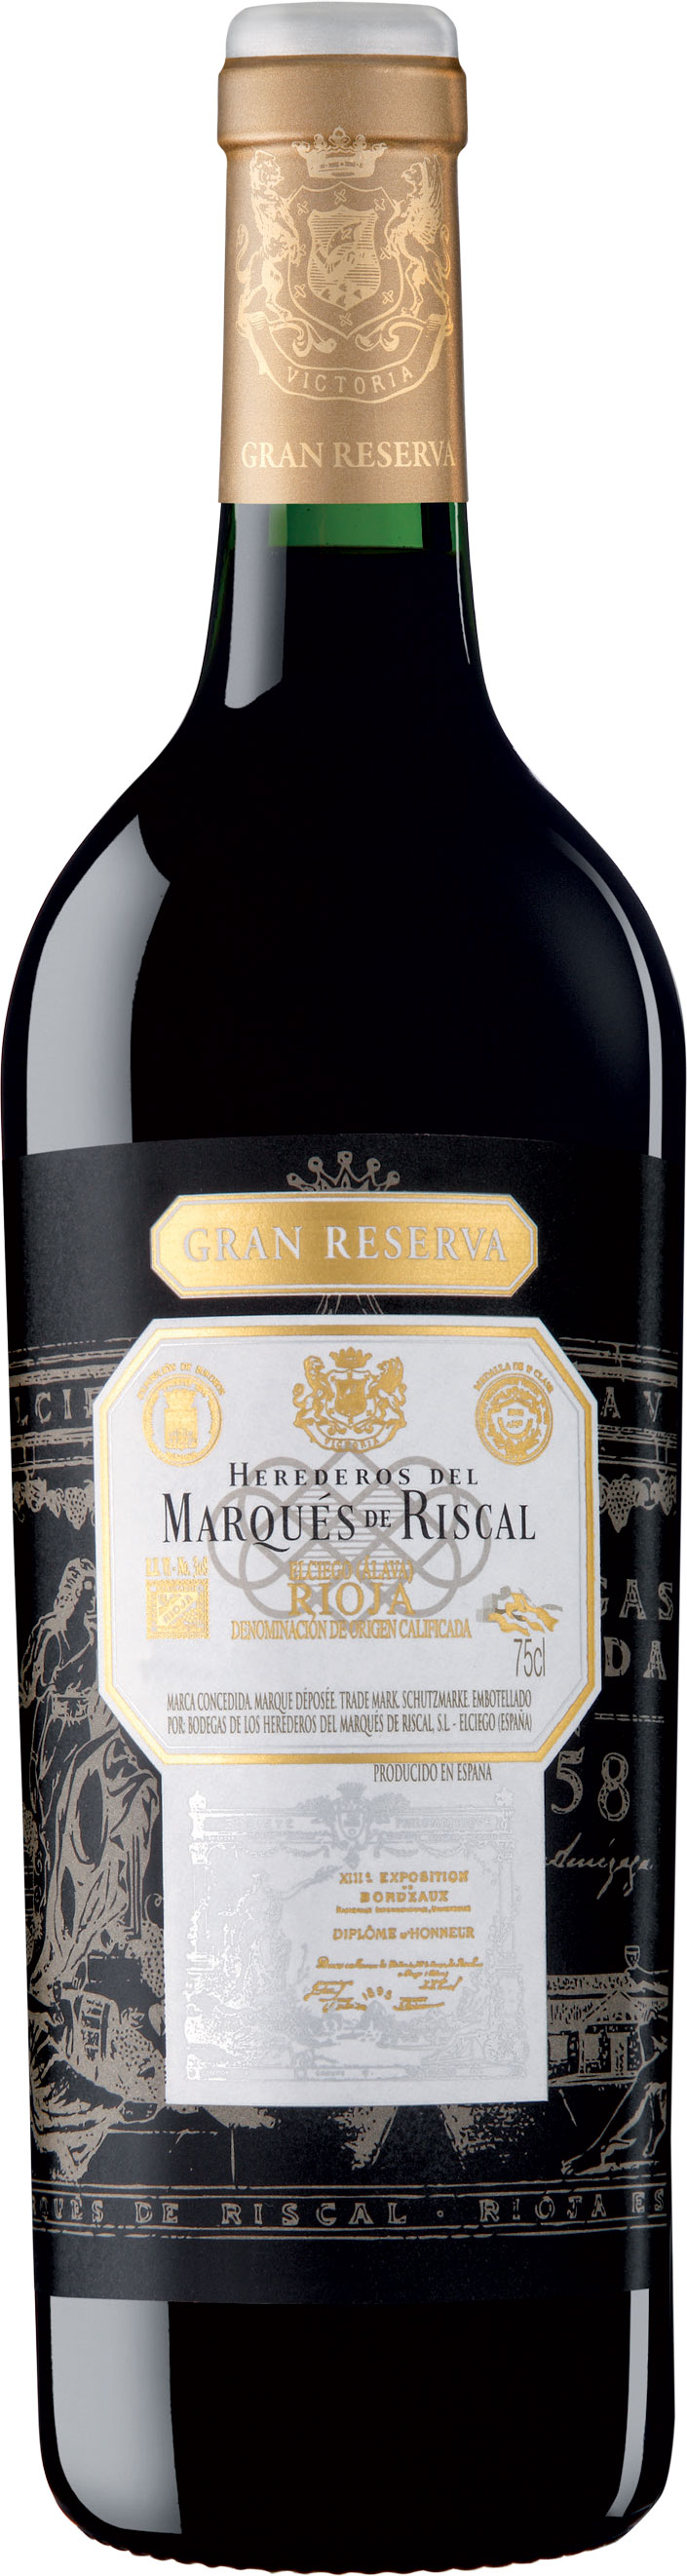 Marques de Riscal - Rioja Gran Reserva 2011 75cl Bottle